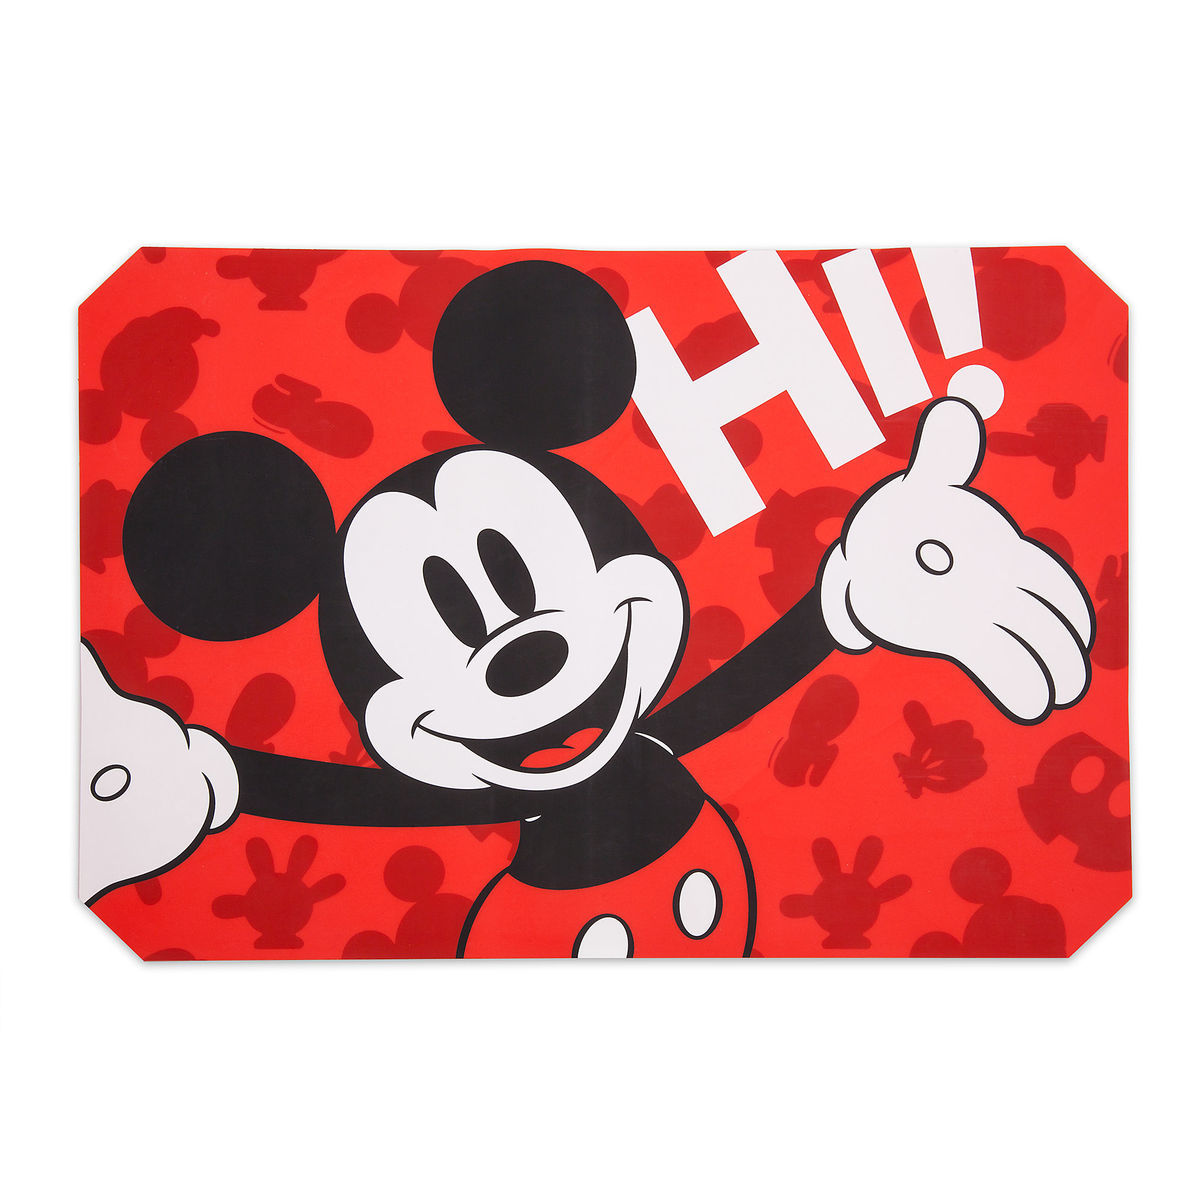 Mickey Mouse Baking Mat Disney Eats Shopdisney Wdw Store Icon Pin Circuit Board Product Image Of 1